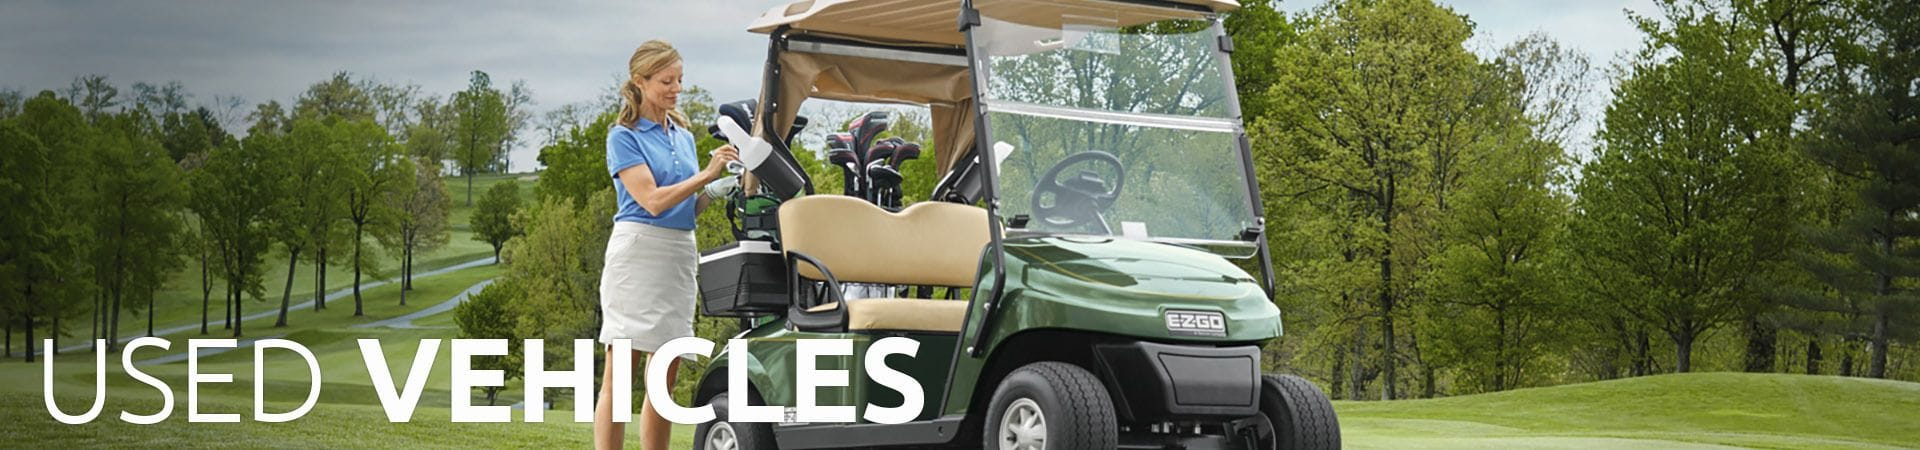 Used Vehicles | Golf Car World